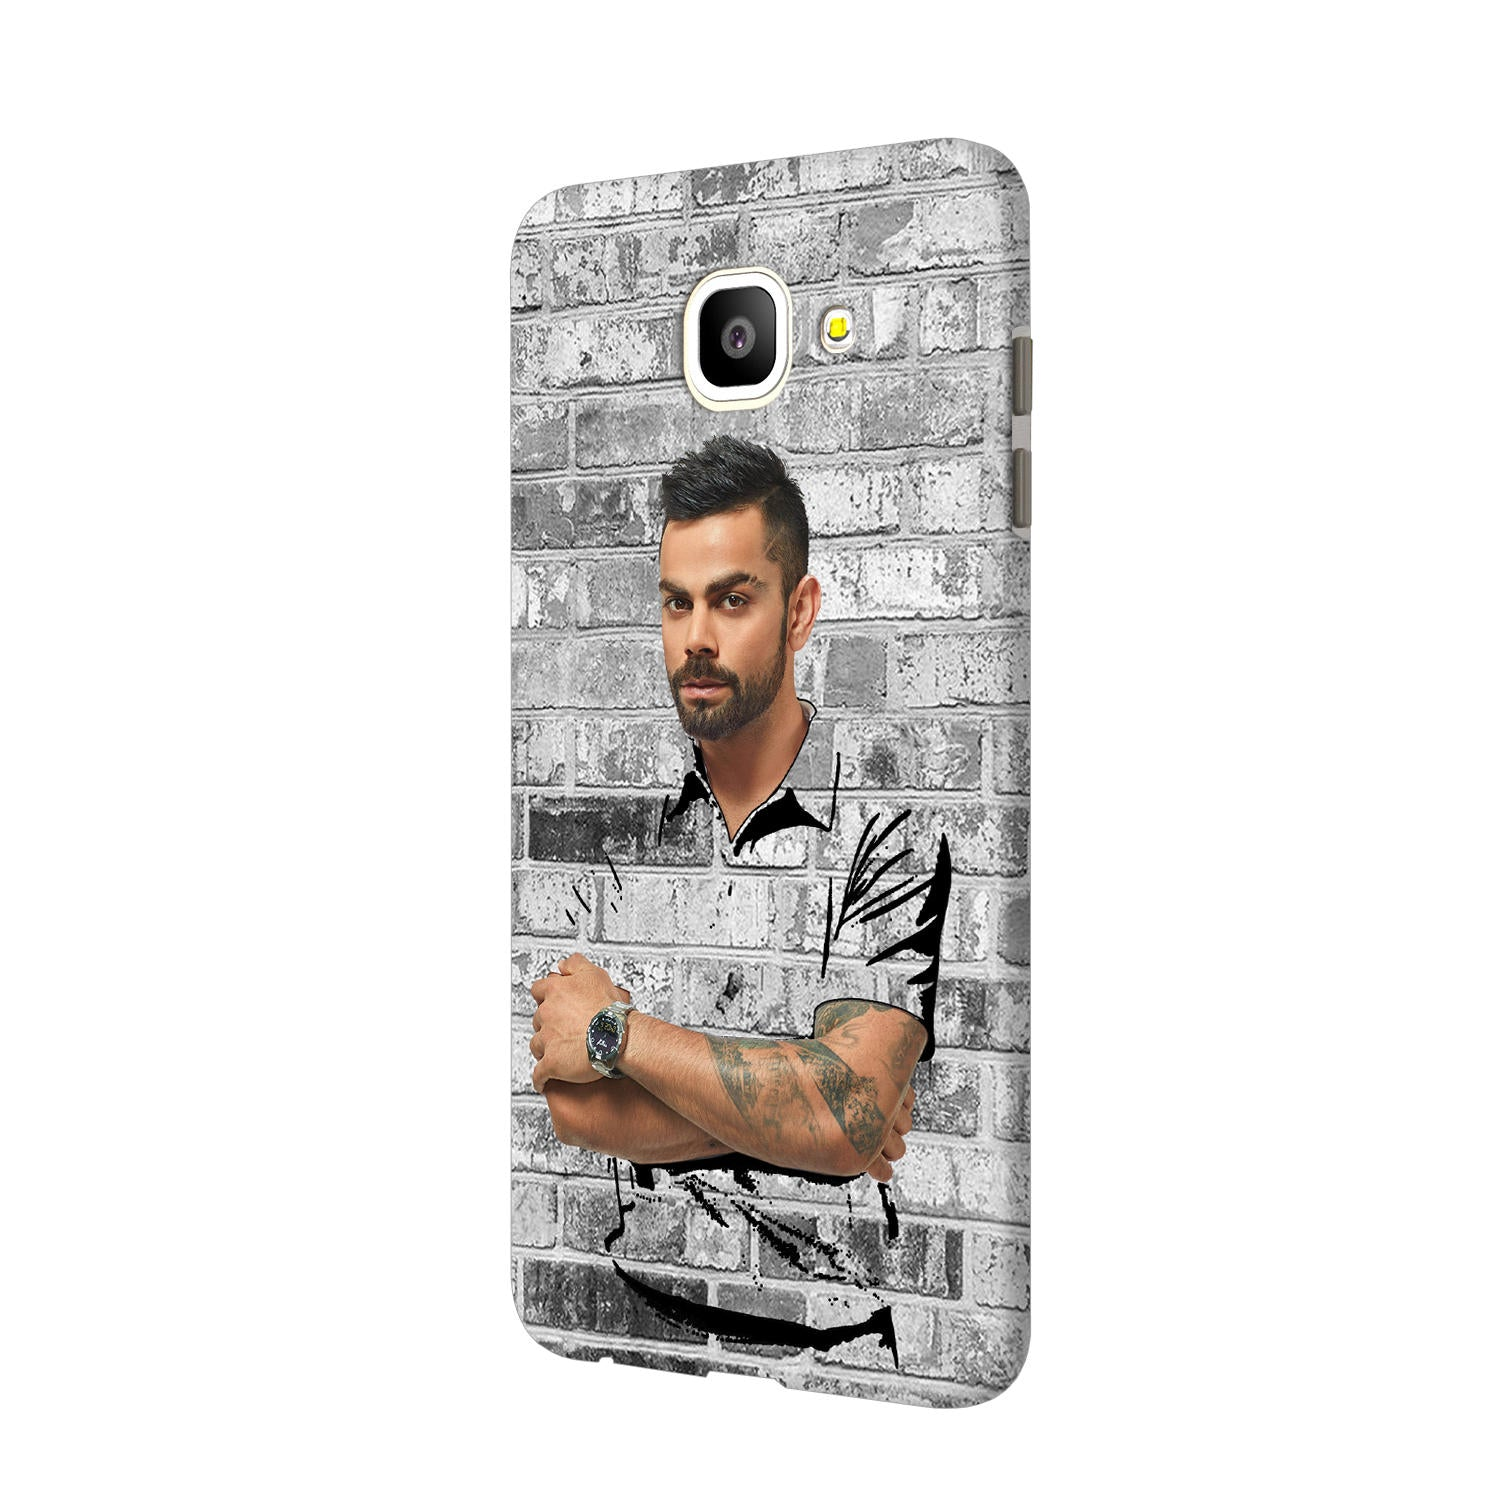 The Wall Of Kohli Samsung Galaxy J7 Max Mobile Cover Case